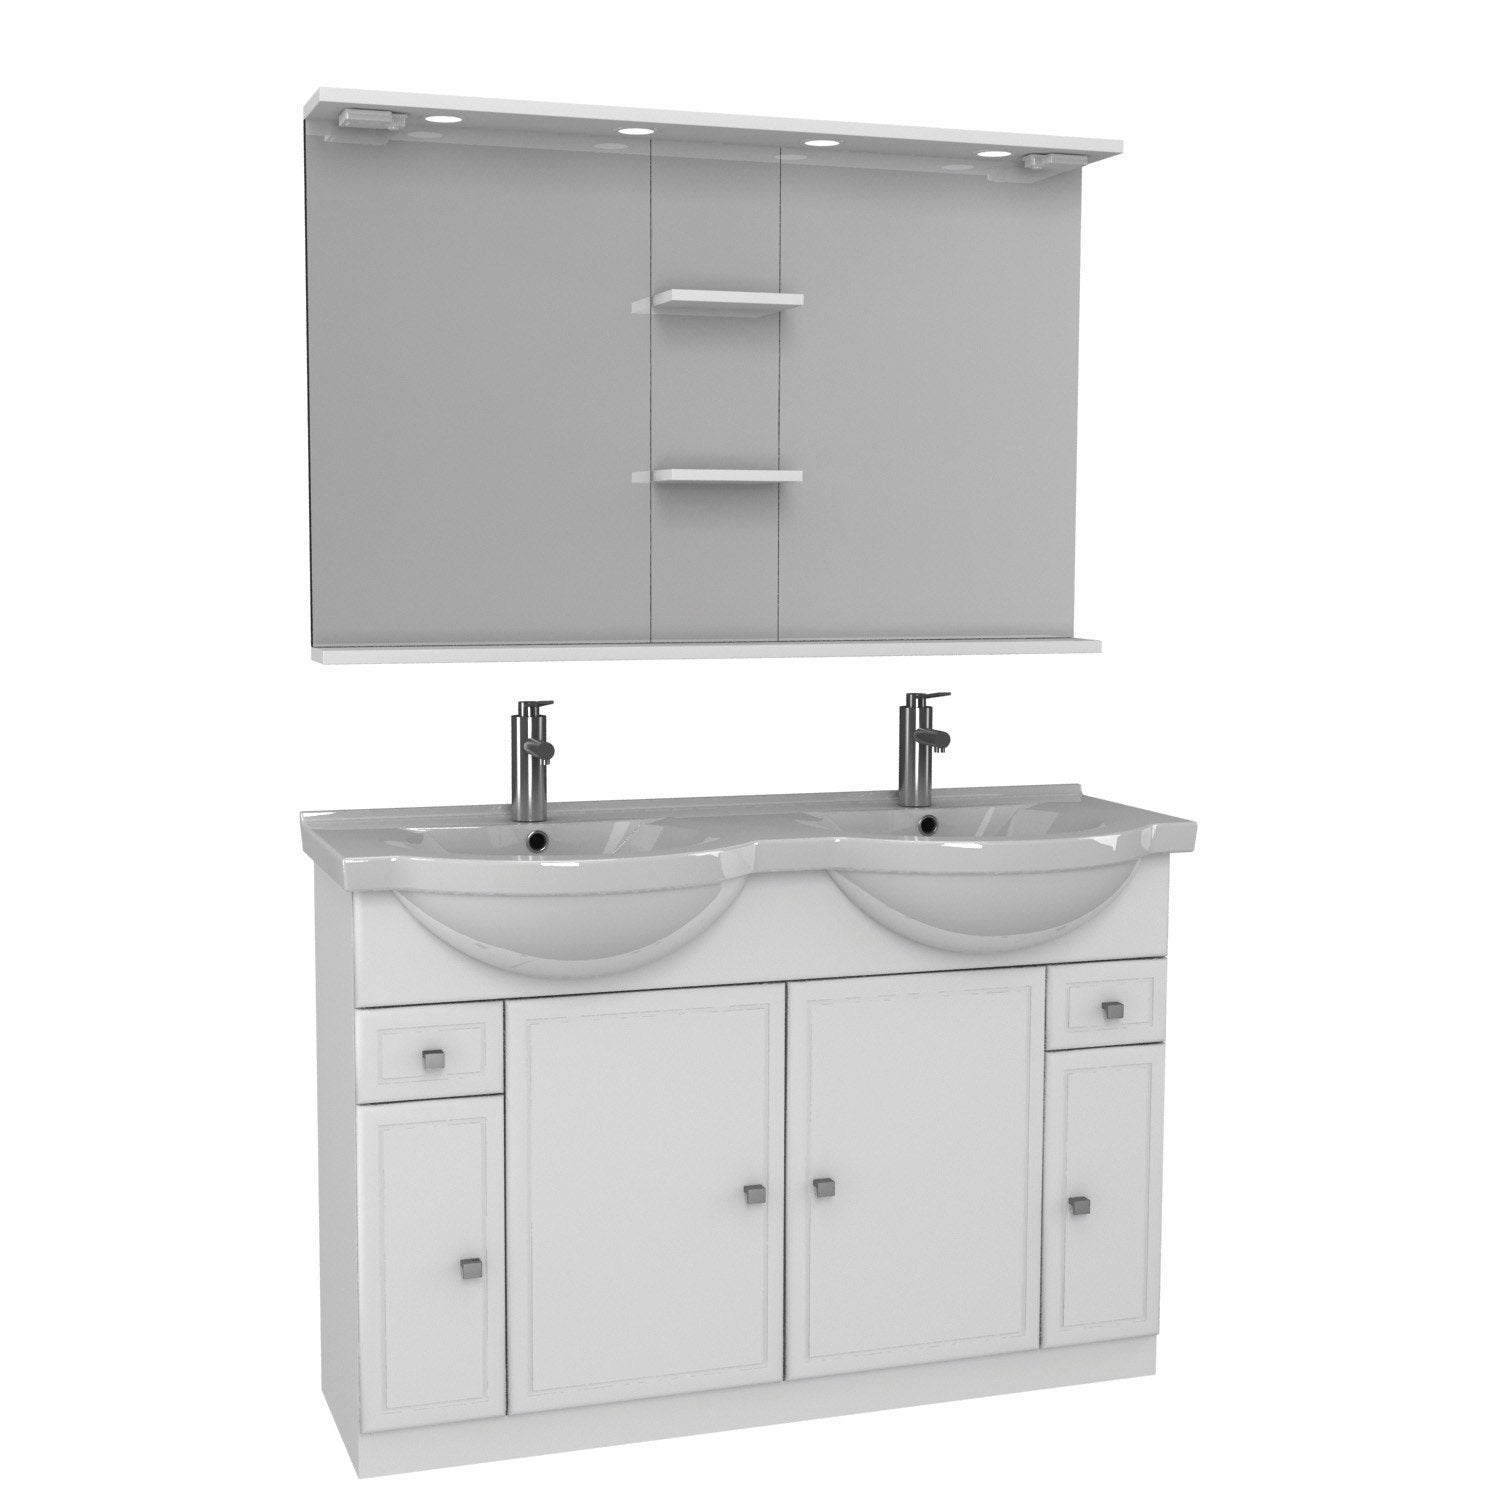 Meuble vasque 125 cm blanc galice leroy merlin for Ensemble lavabo meuble leroy merlin